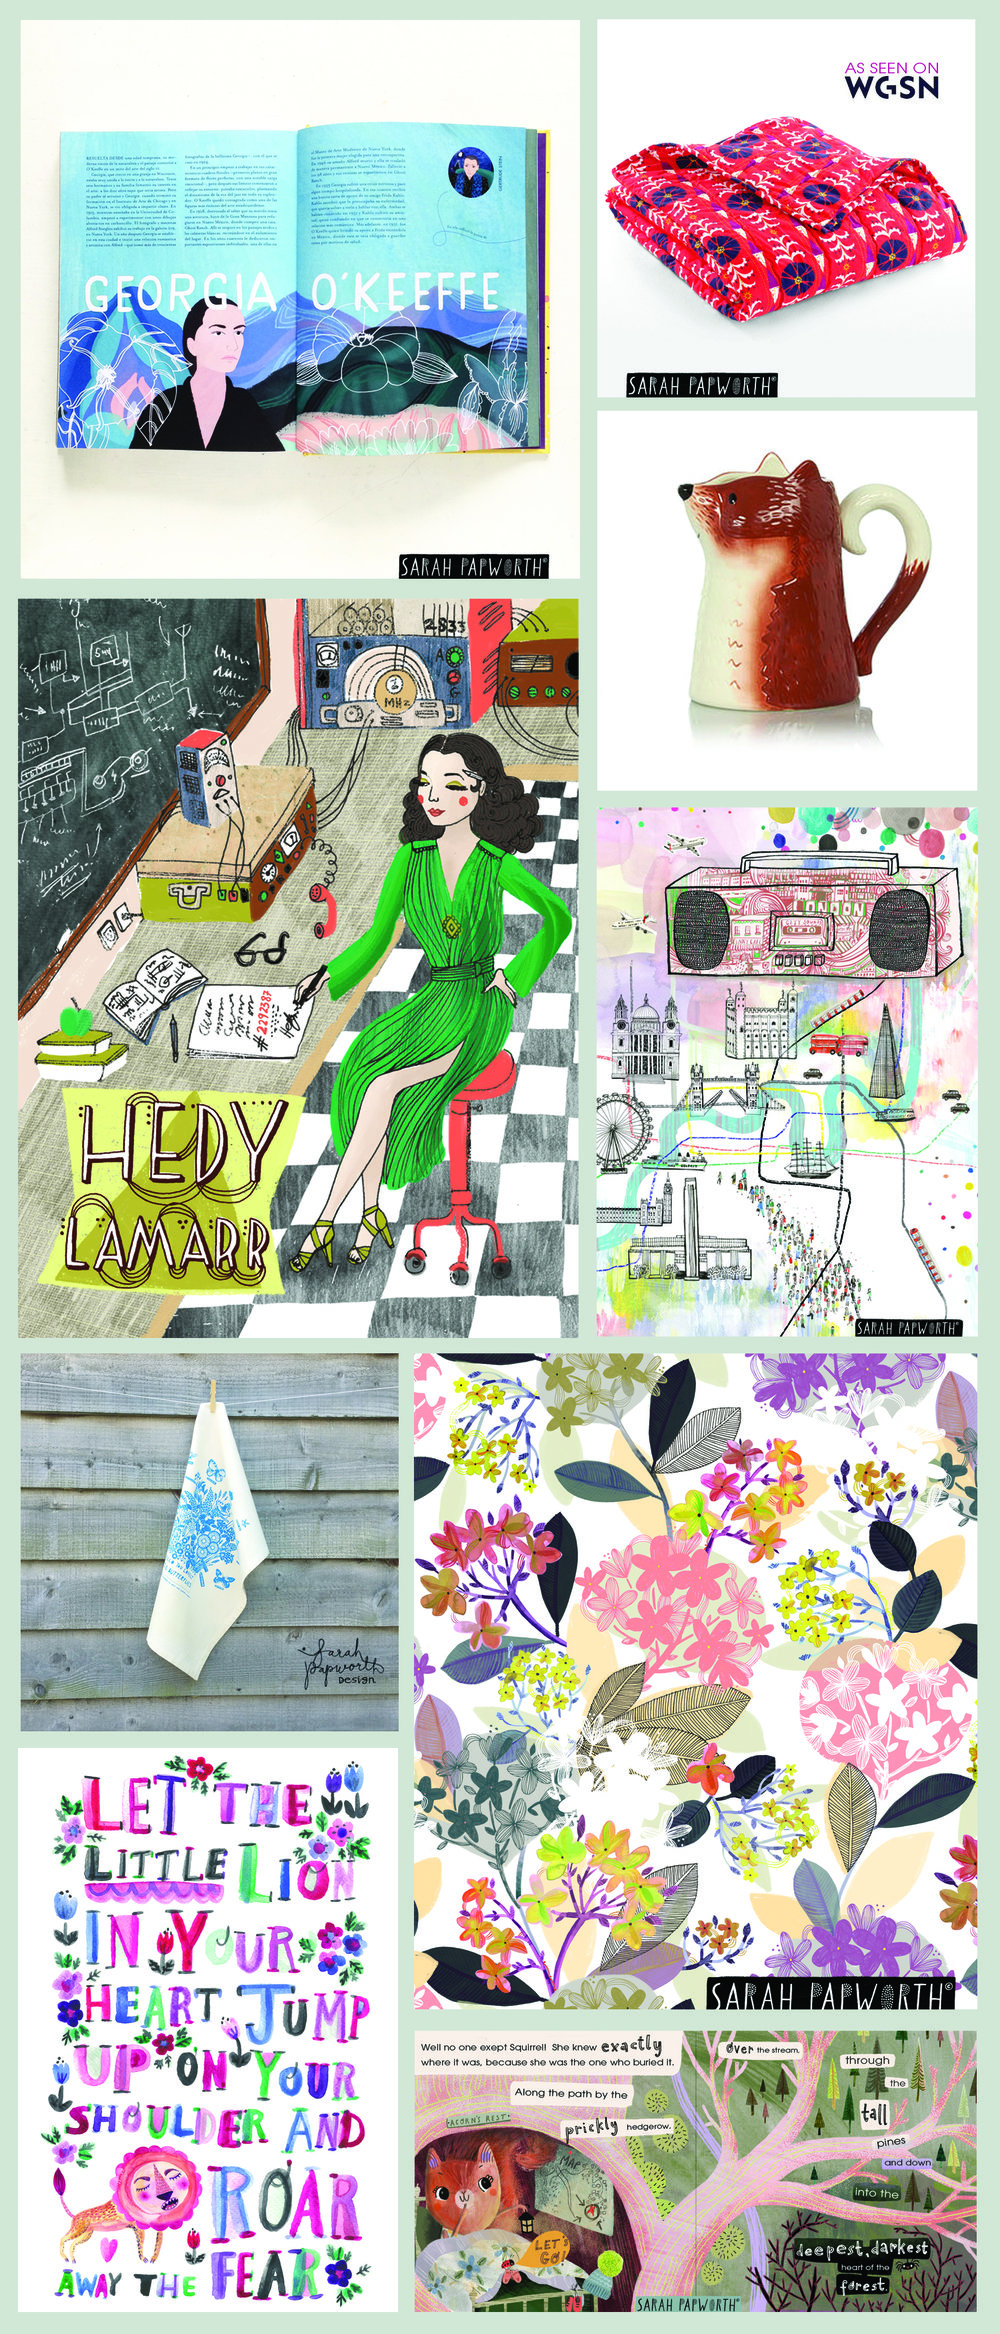 textile homeware surface pattern designer and illustrator sarah papworth.jpg